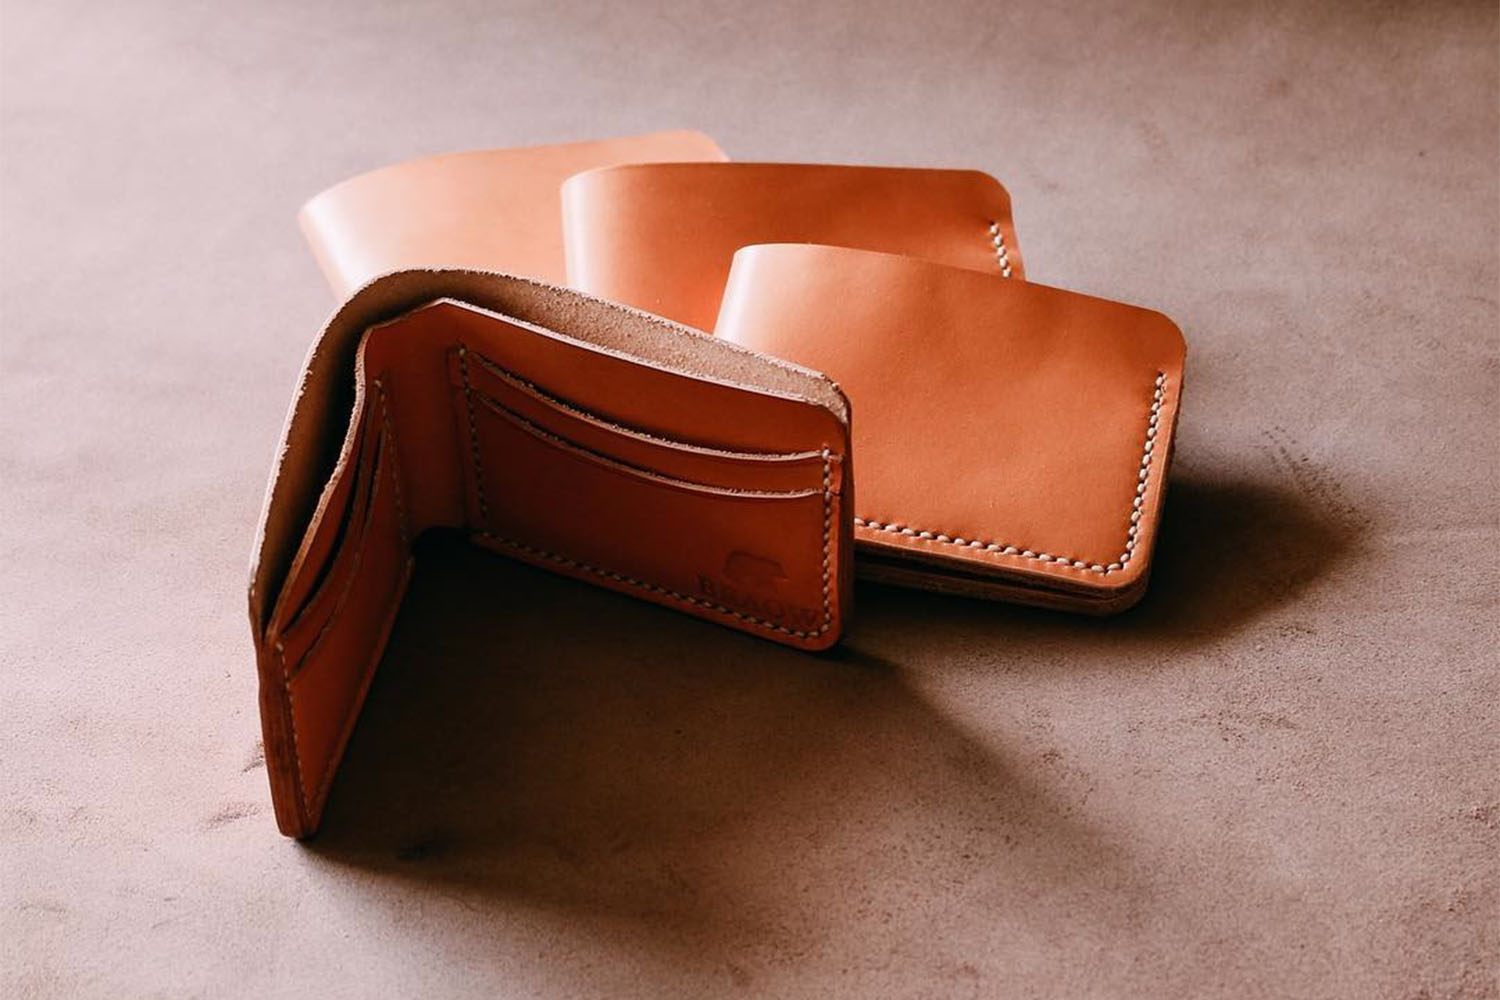 Uncategorized Quality Of Leather nhbl braow goods timelessness and durability of high quality enlivening the competitive market leather production with its craftsmanship features variety classic vege